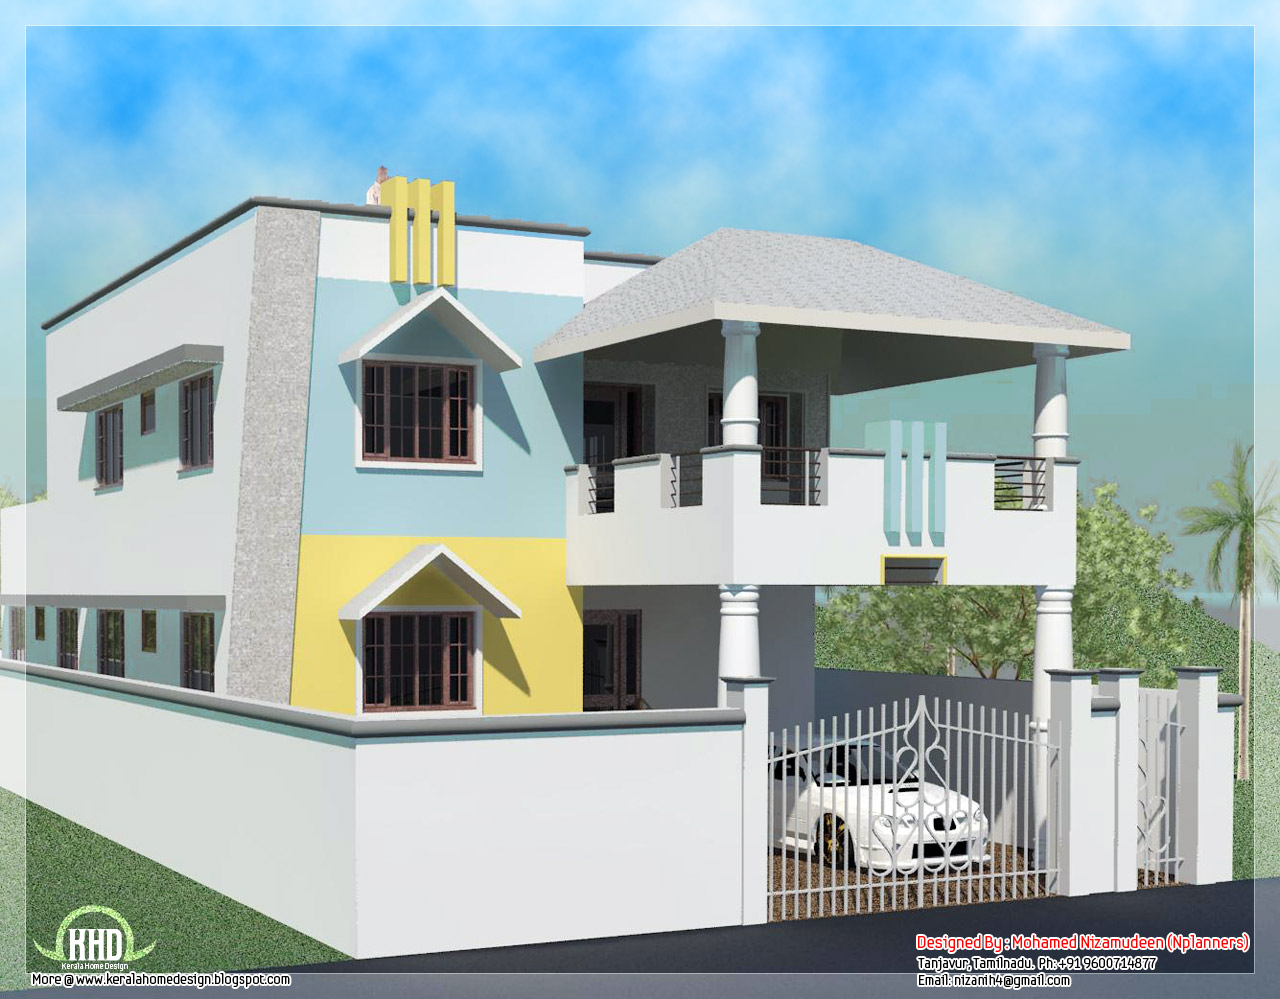 House model in indian style